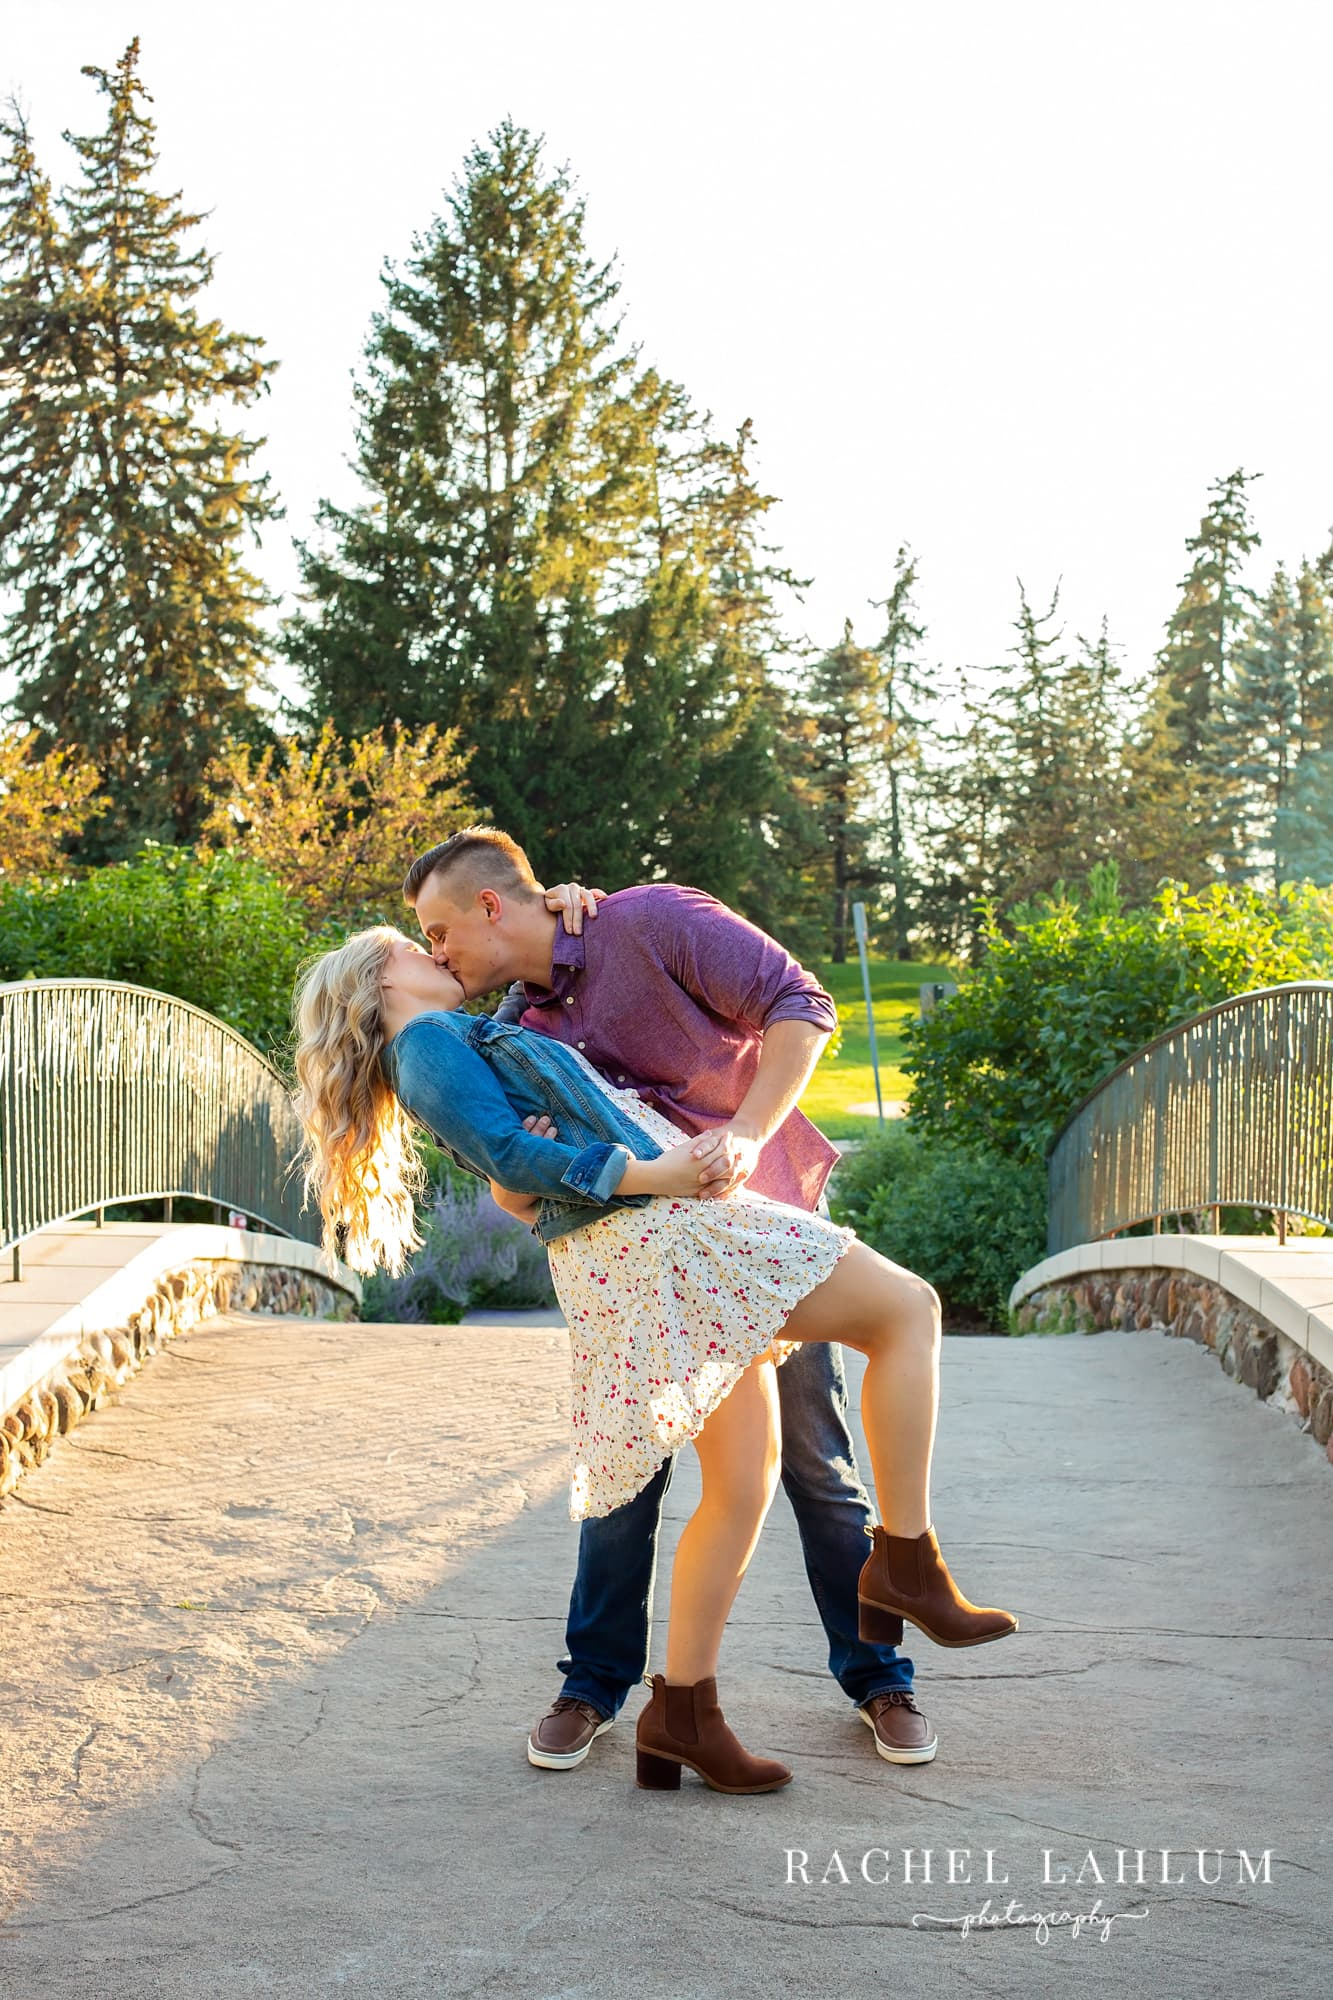 Tyler dips Emily on bridge during engagement photo session at Como Park in St. Paul.